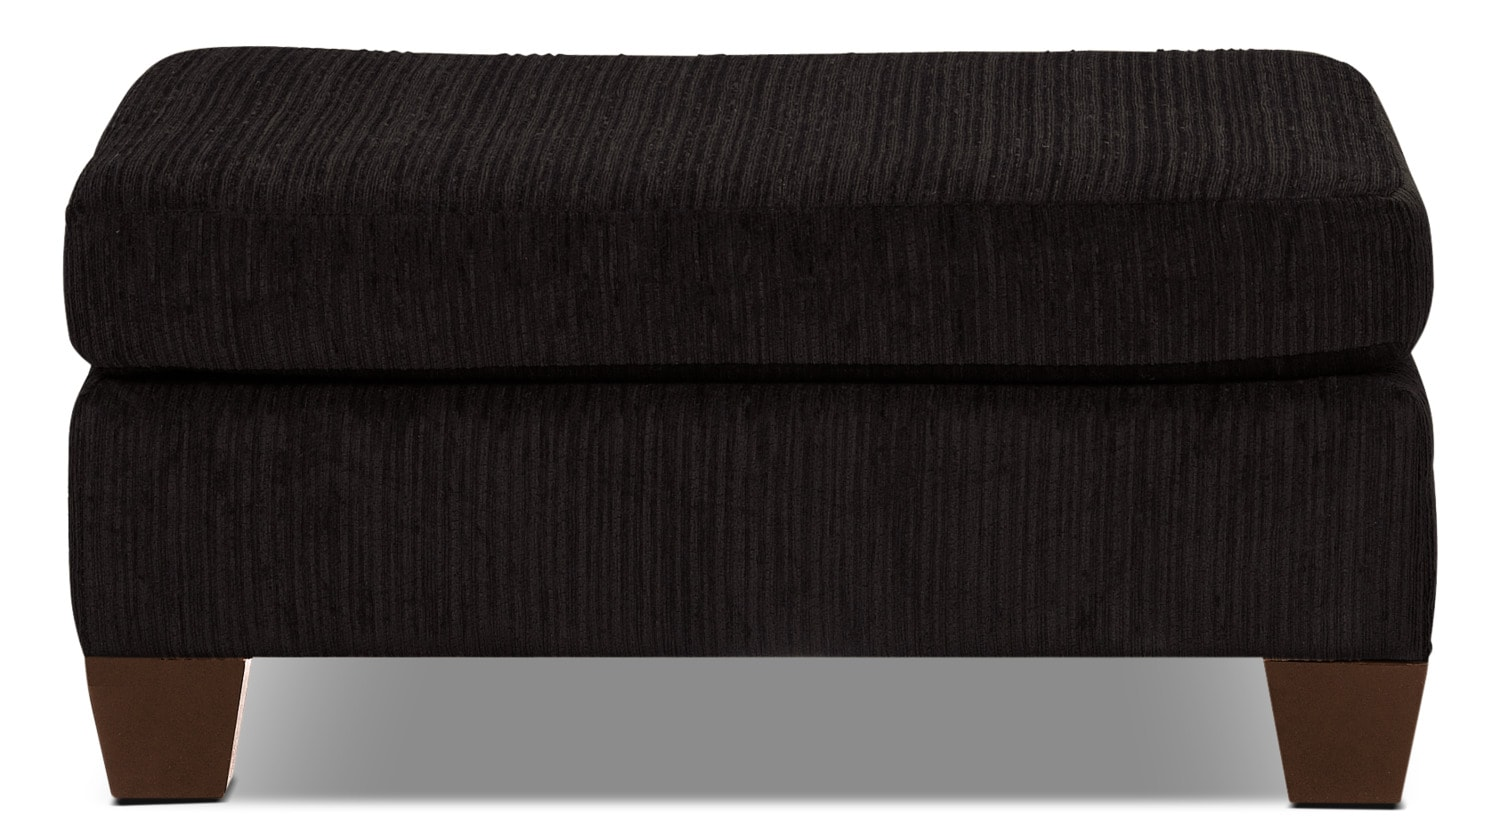 Putty Chenille Ottoman - Chocolate